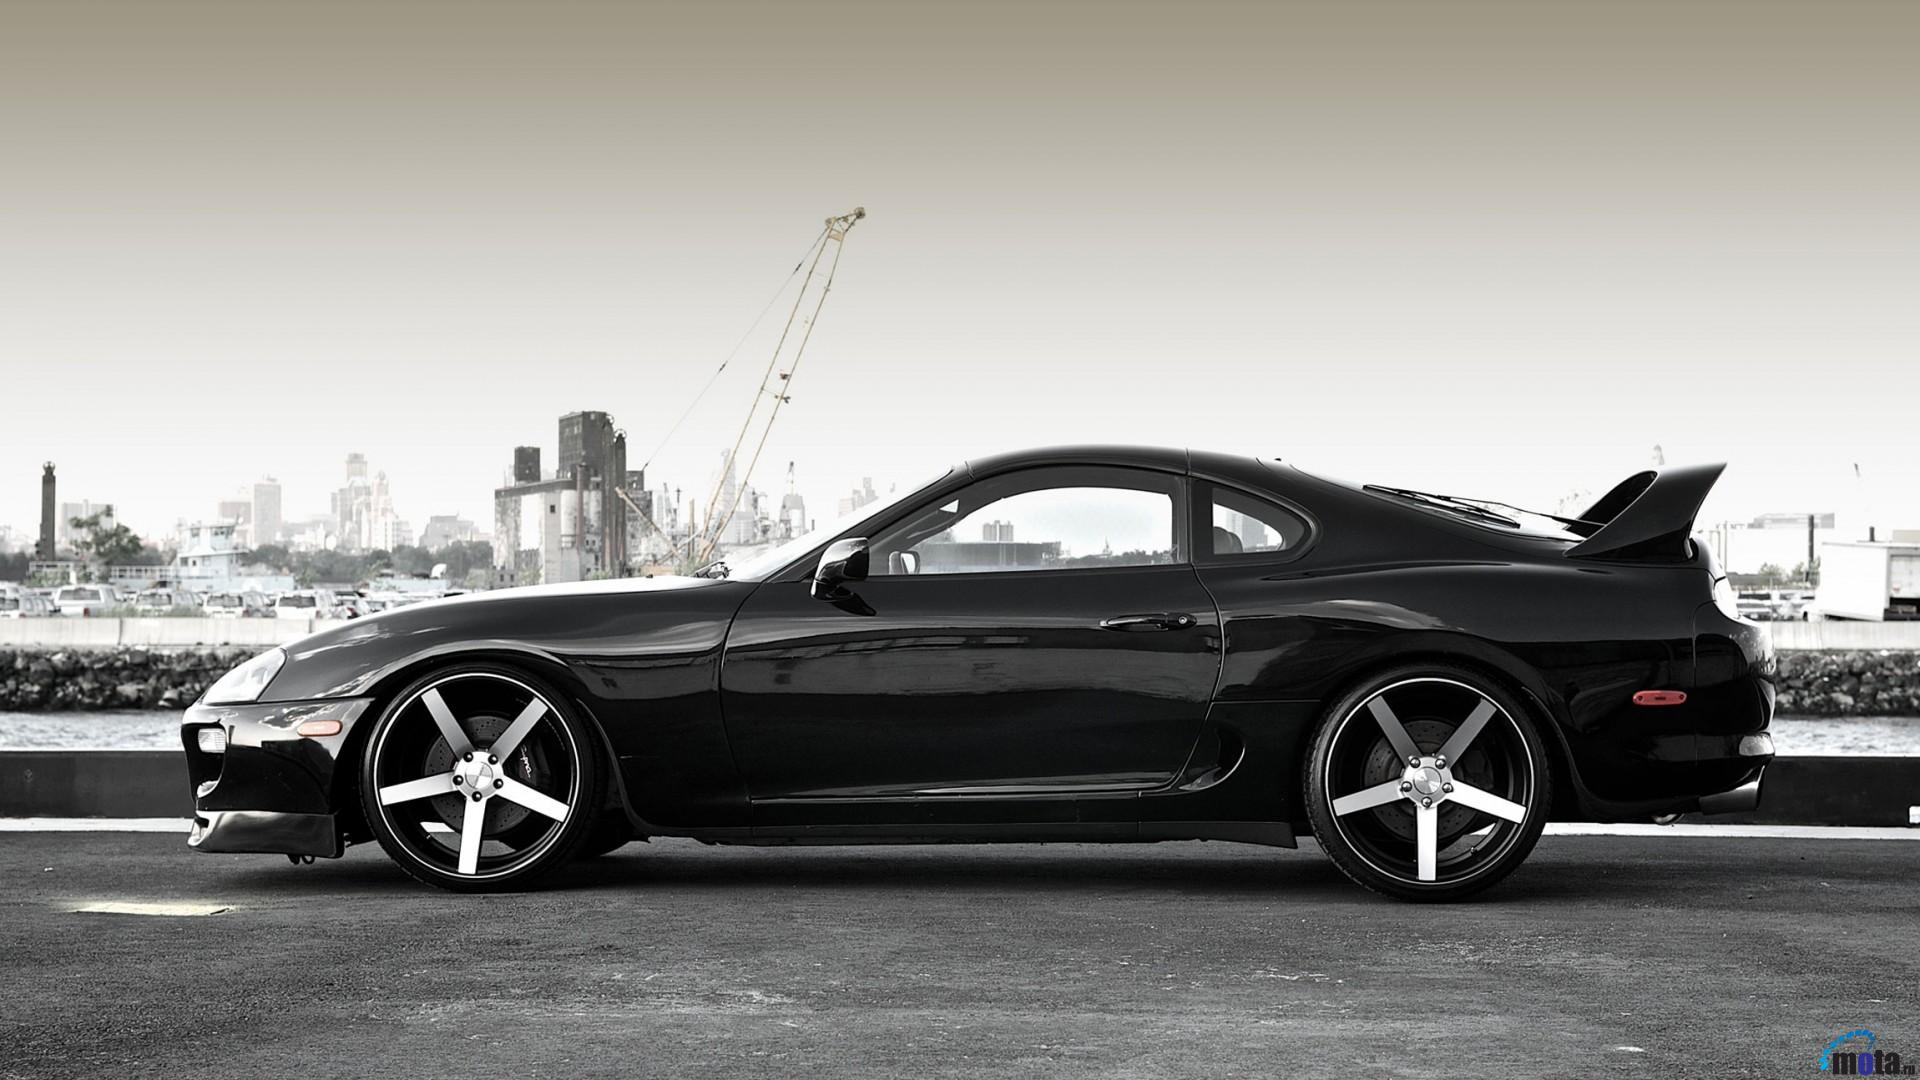 Black Sport Cars Wallpapers 8 Background Wallpaper